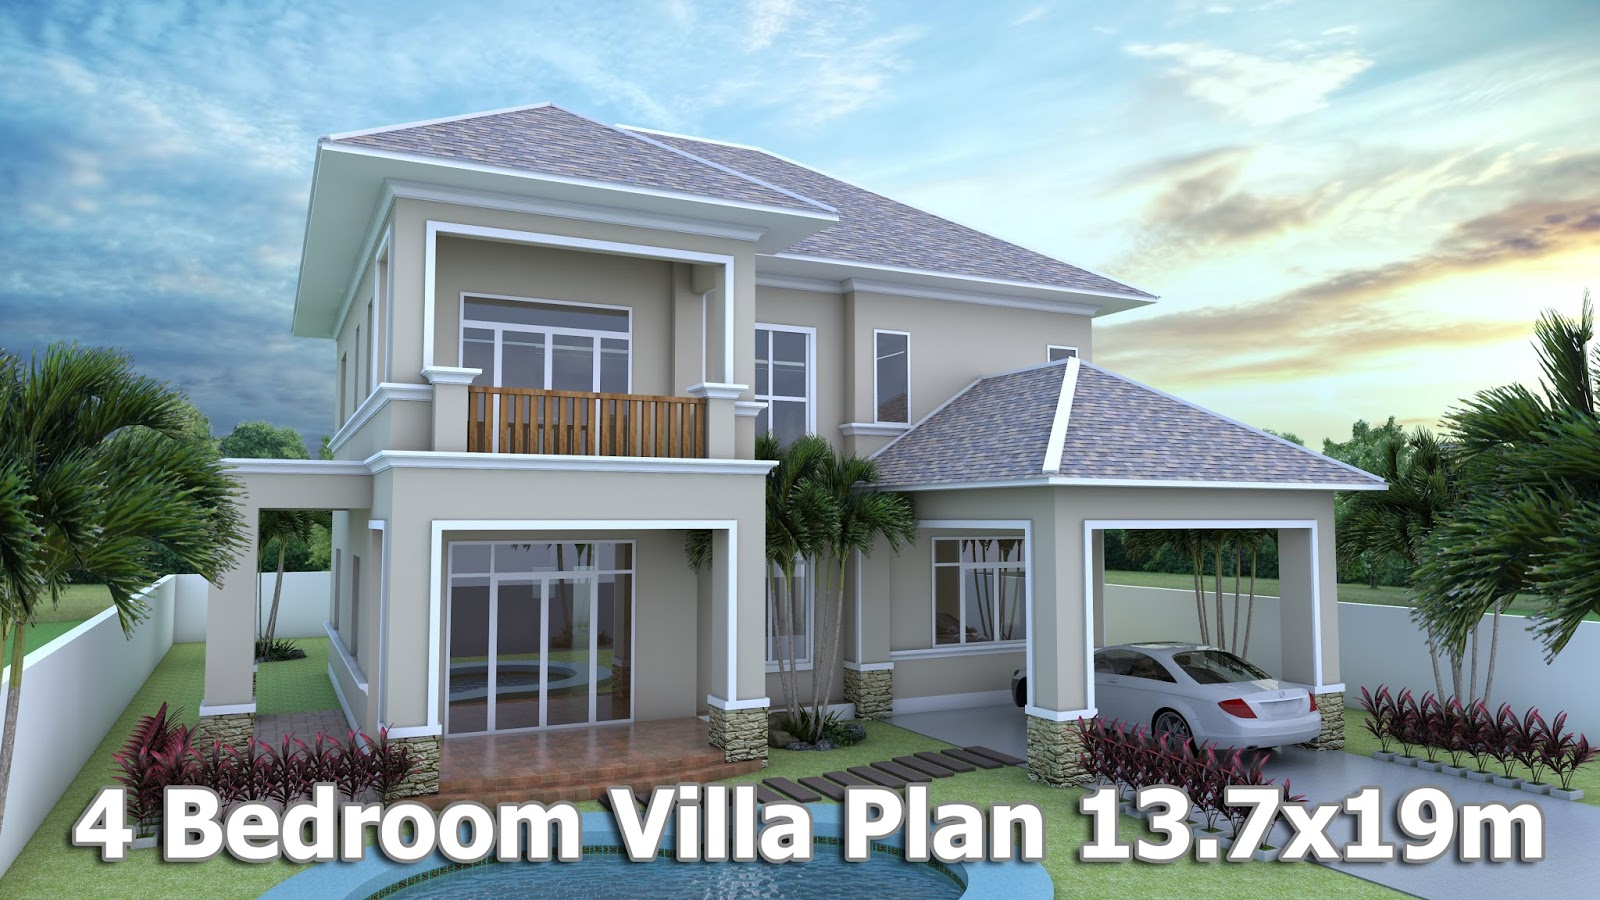 Home Design 3d Sketchup Villa Plan 13.7x19m